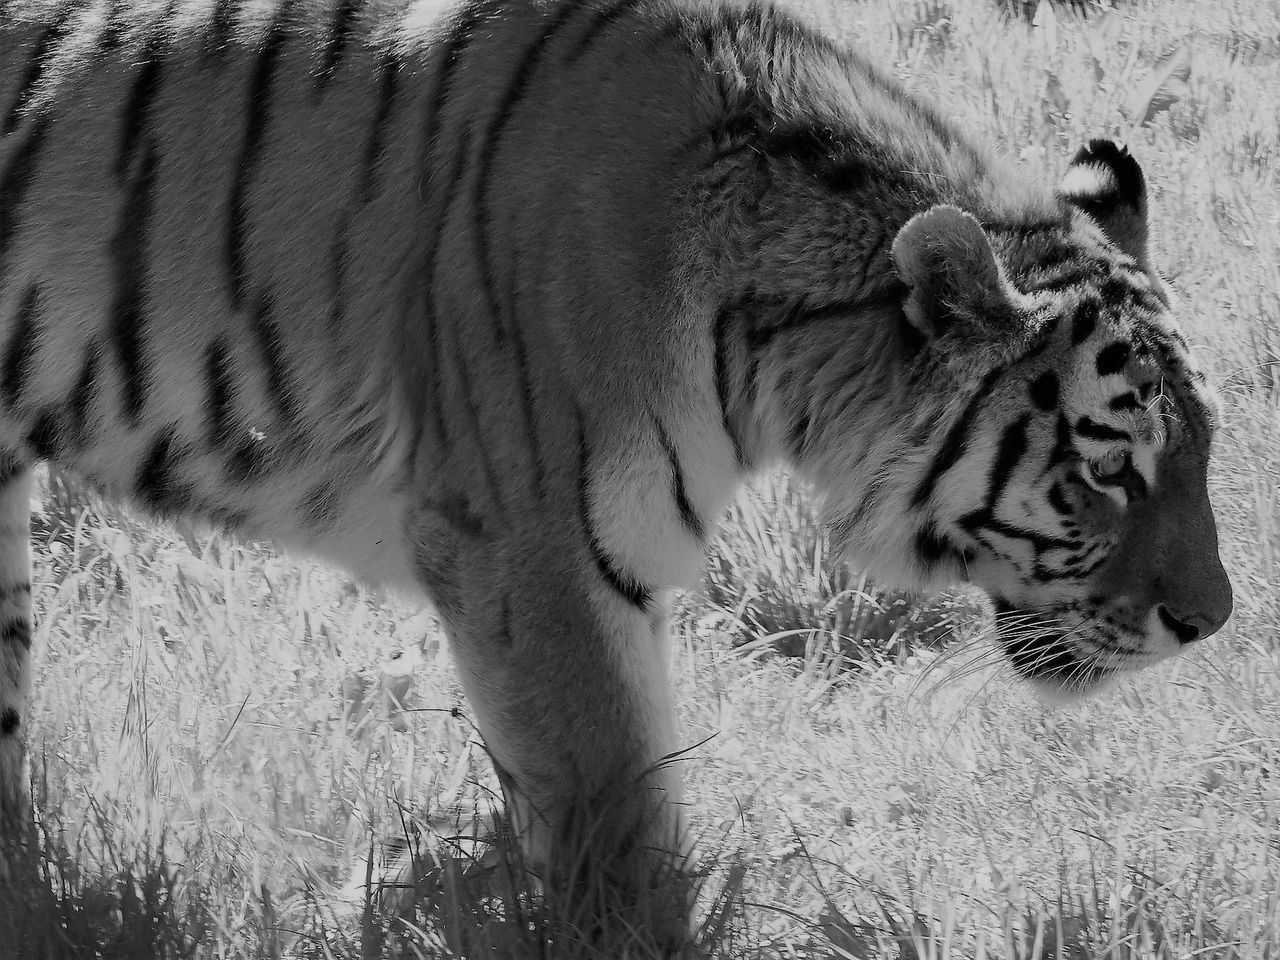 animals in the wild, one animal, animal themes, animal wildlife, grass, mammal, field, outdoors, tiger, day, no people, nature, white tiger, safari animals, close-up